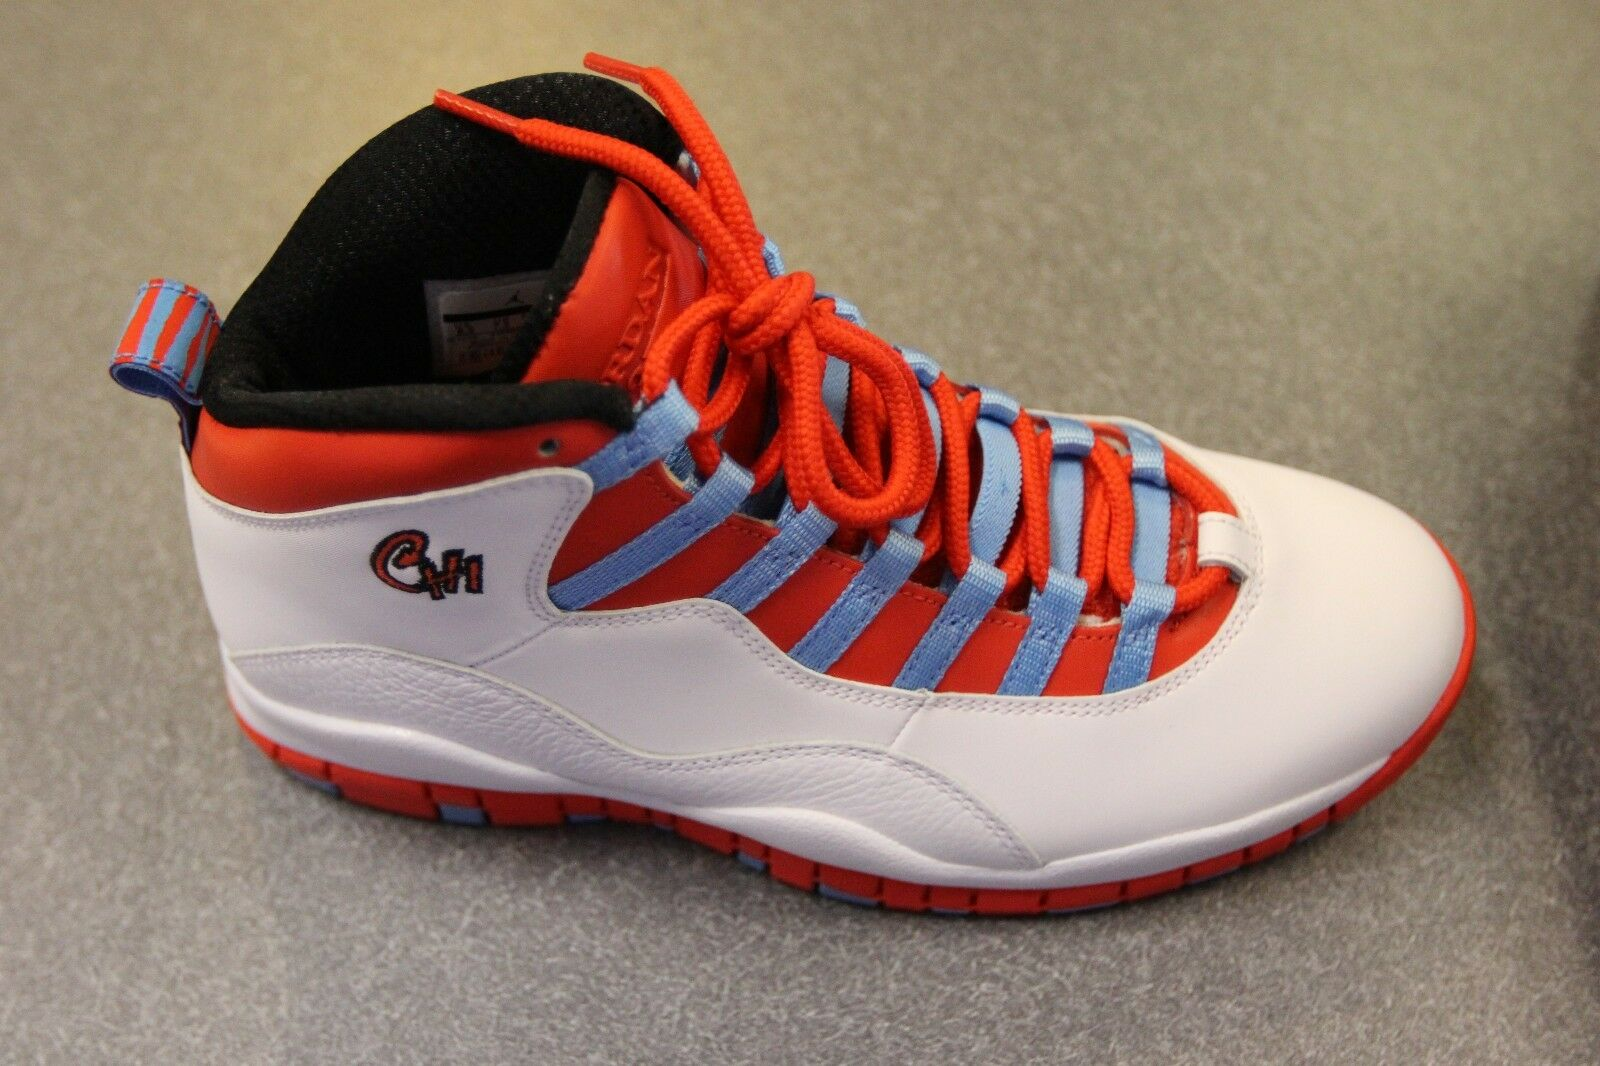 NIKE AIR JORDAN RETRO 10 (310805-114)CHICAGO  WHITE-CRIMSON-BLUE SZ 8.5